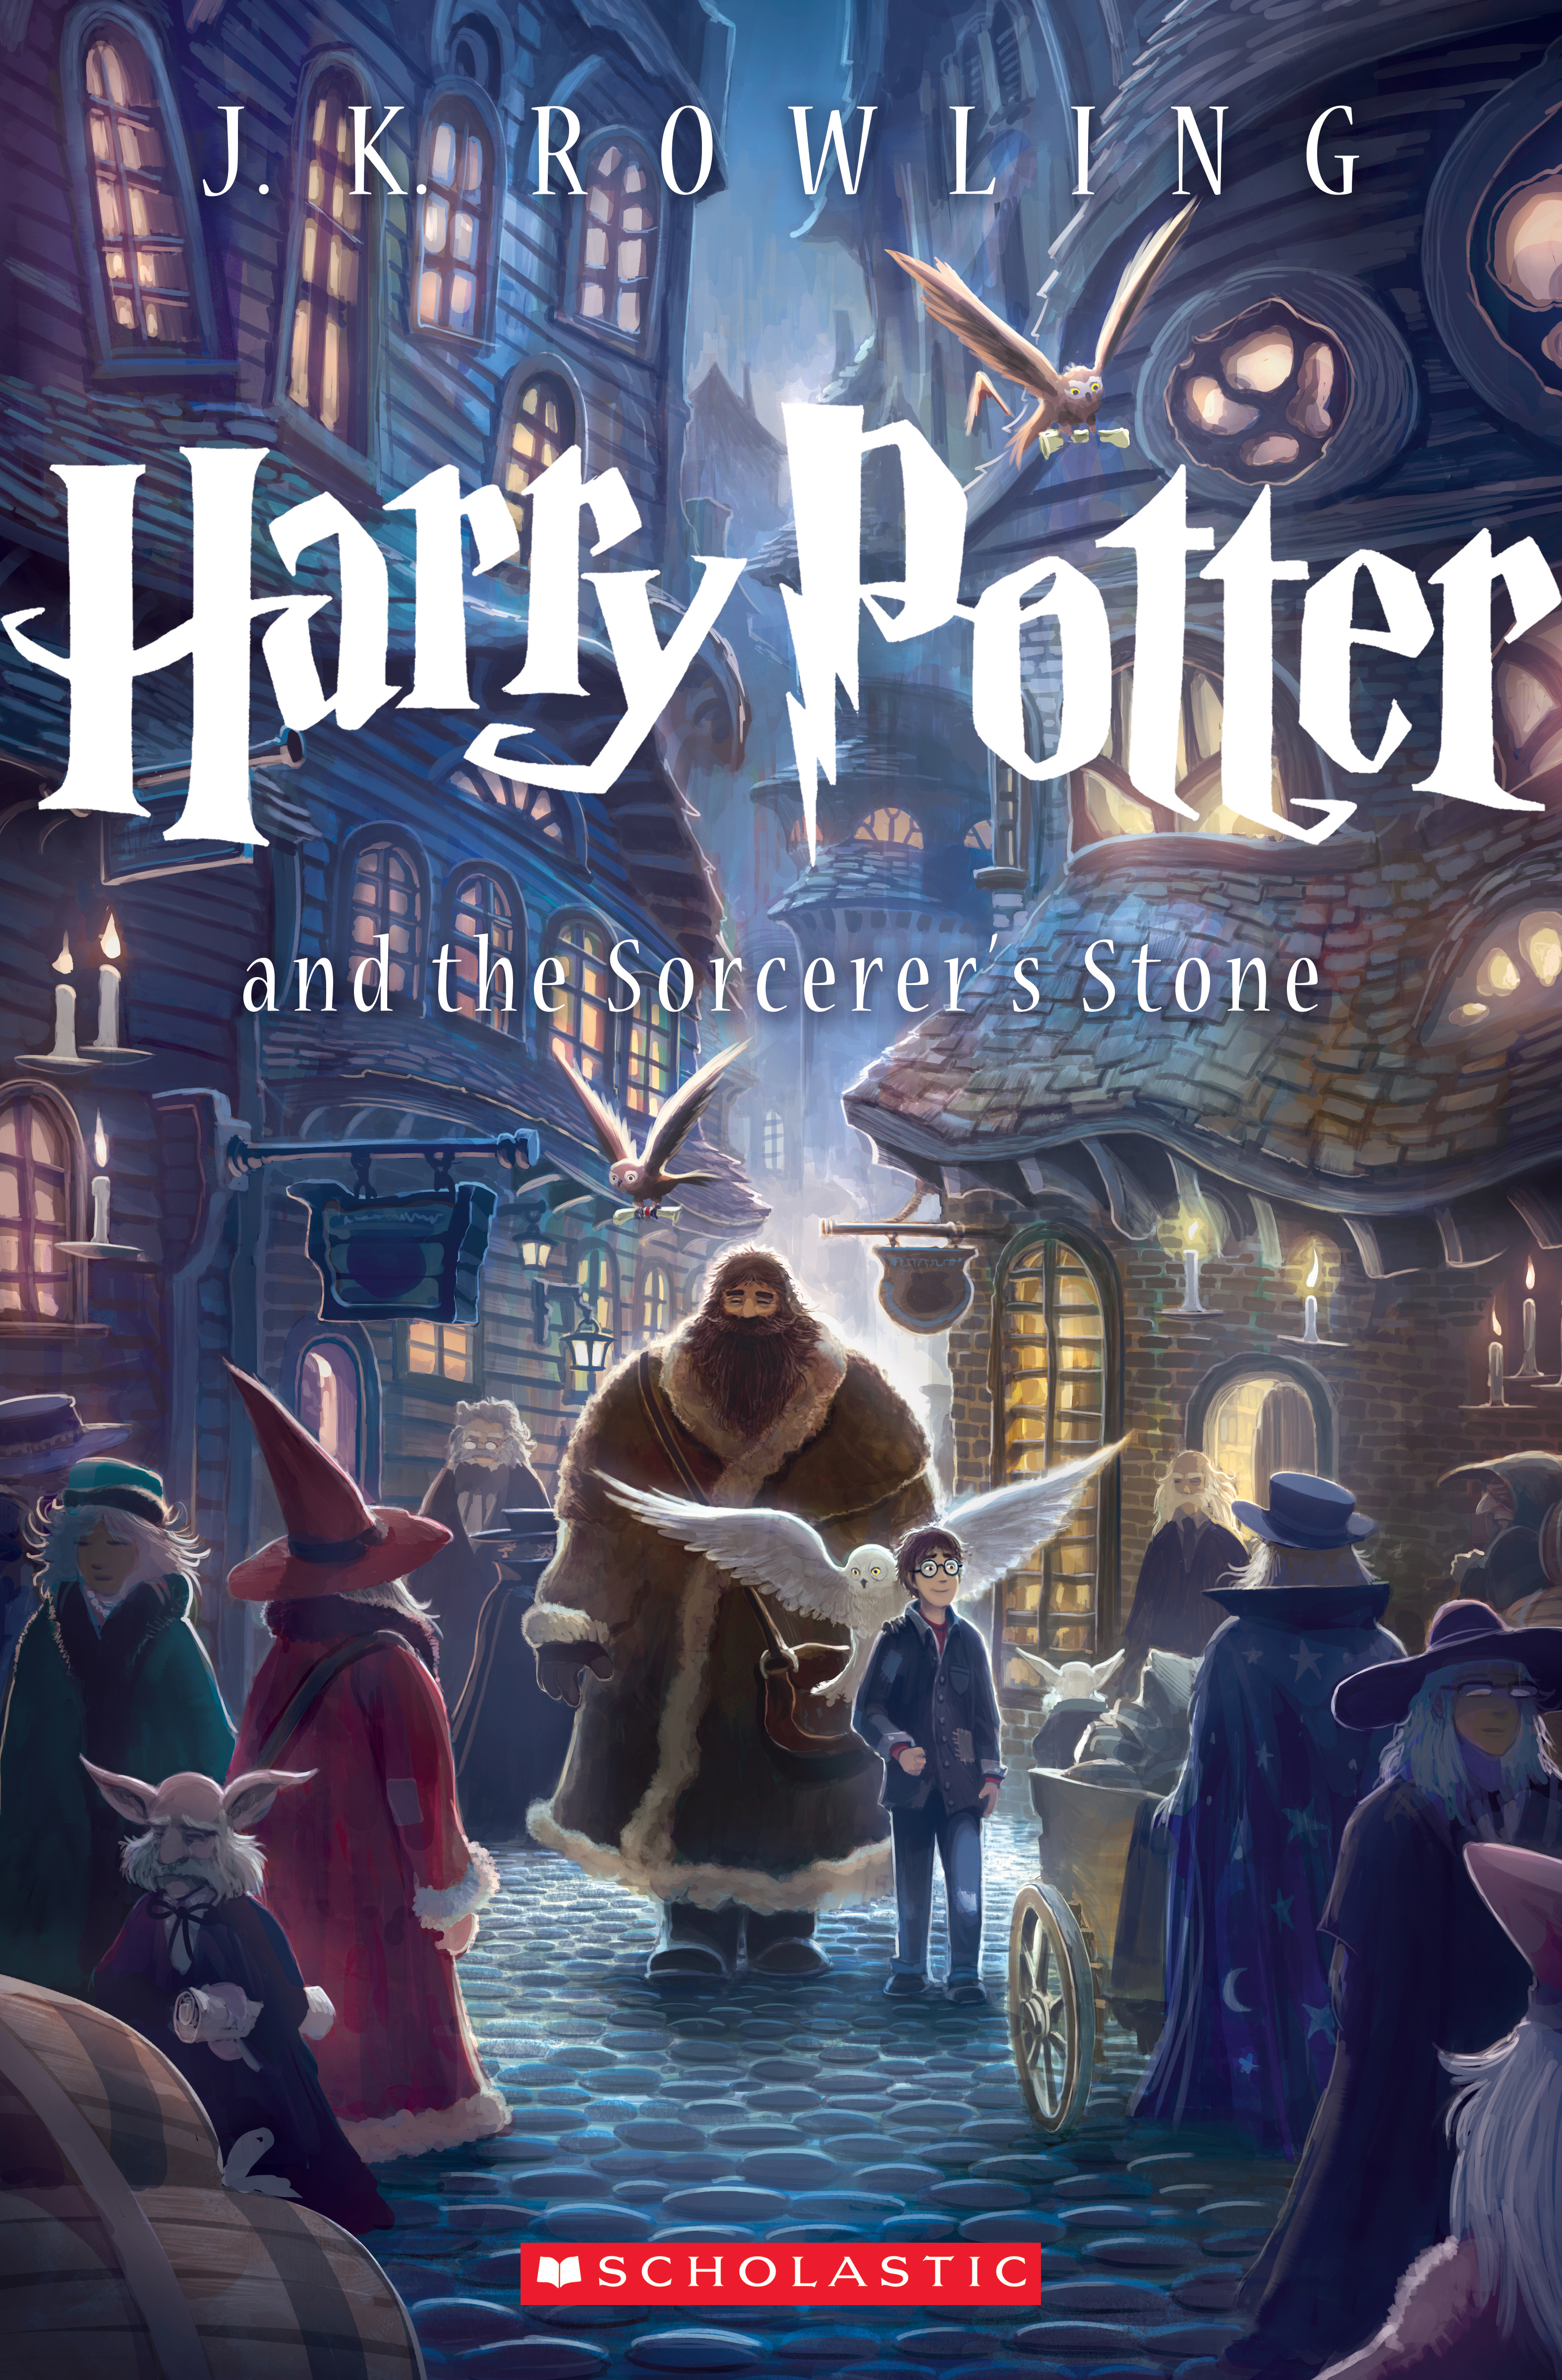 Harry Potter First Book Cover : Scholastic unveils first of seven new covers for the harry